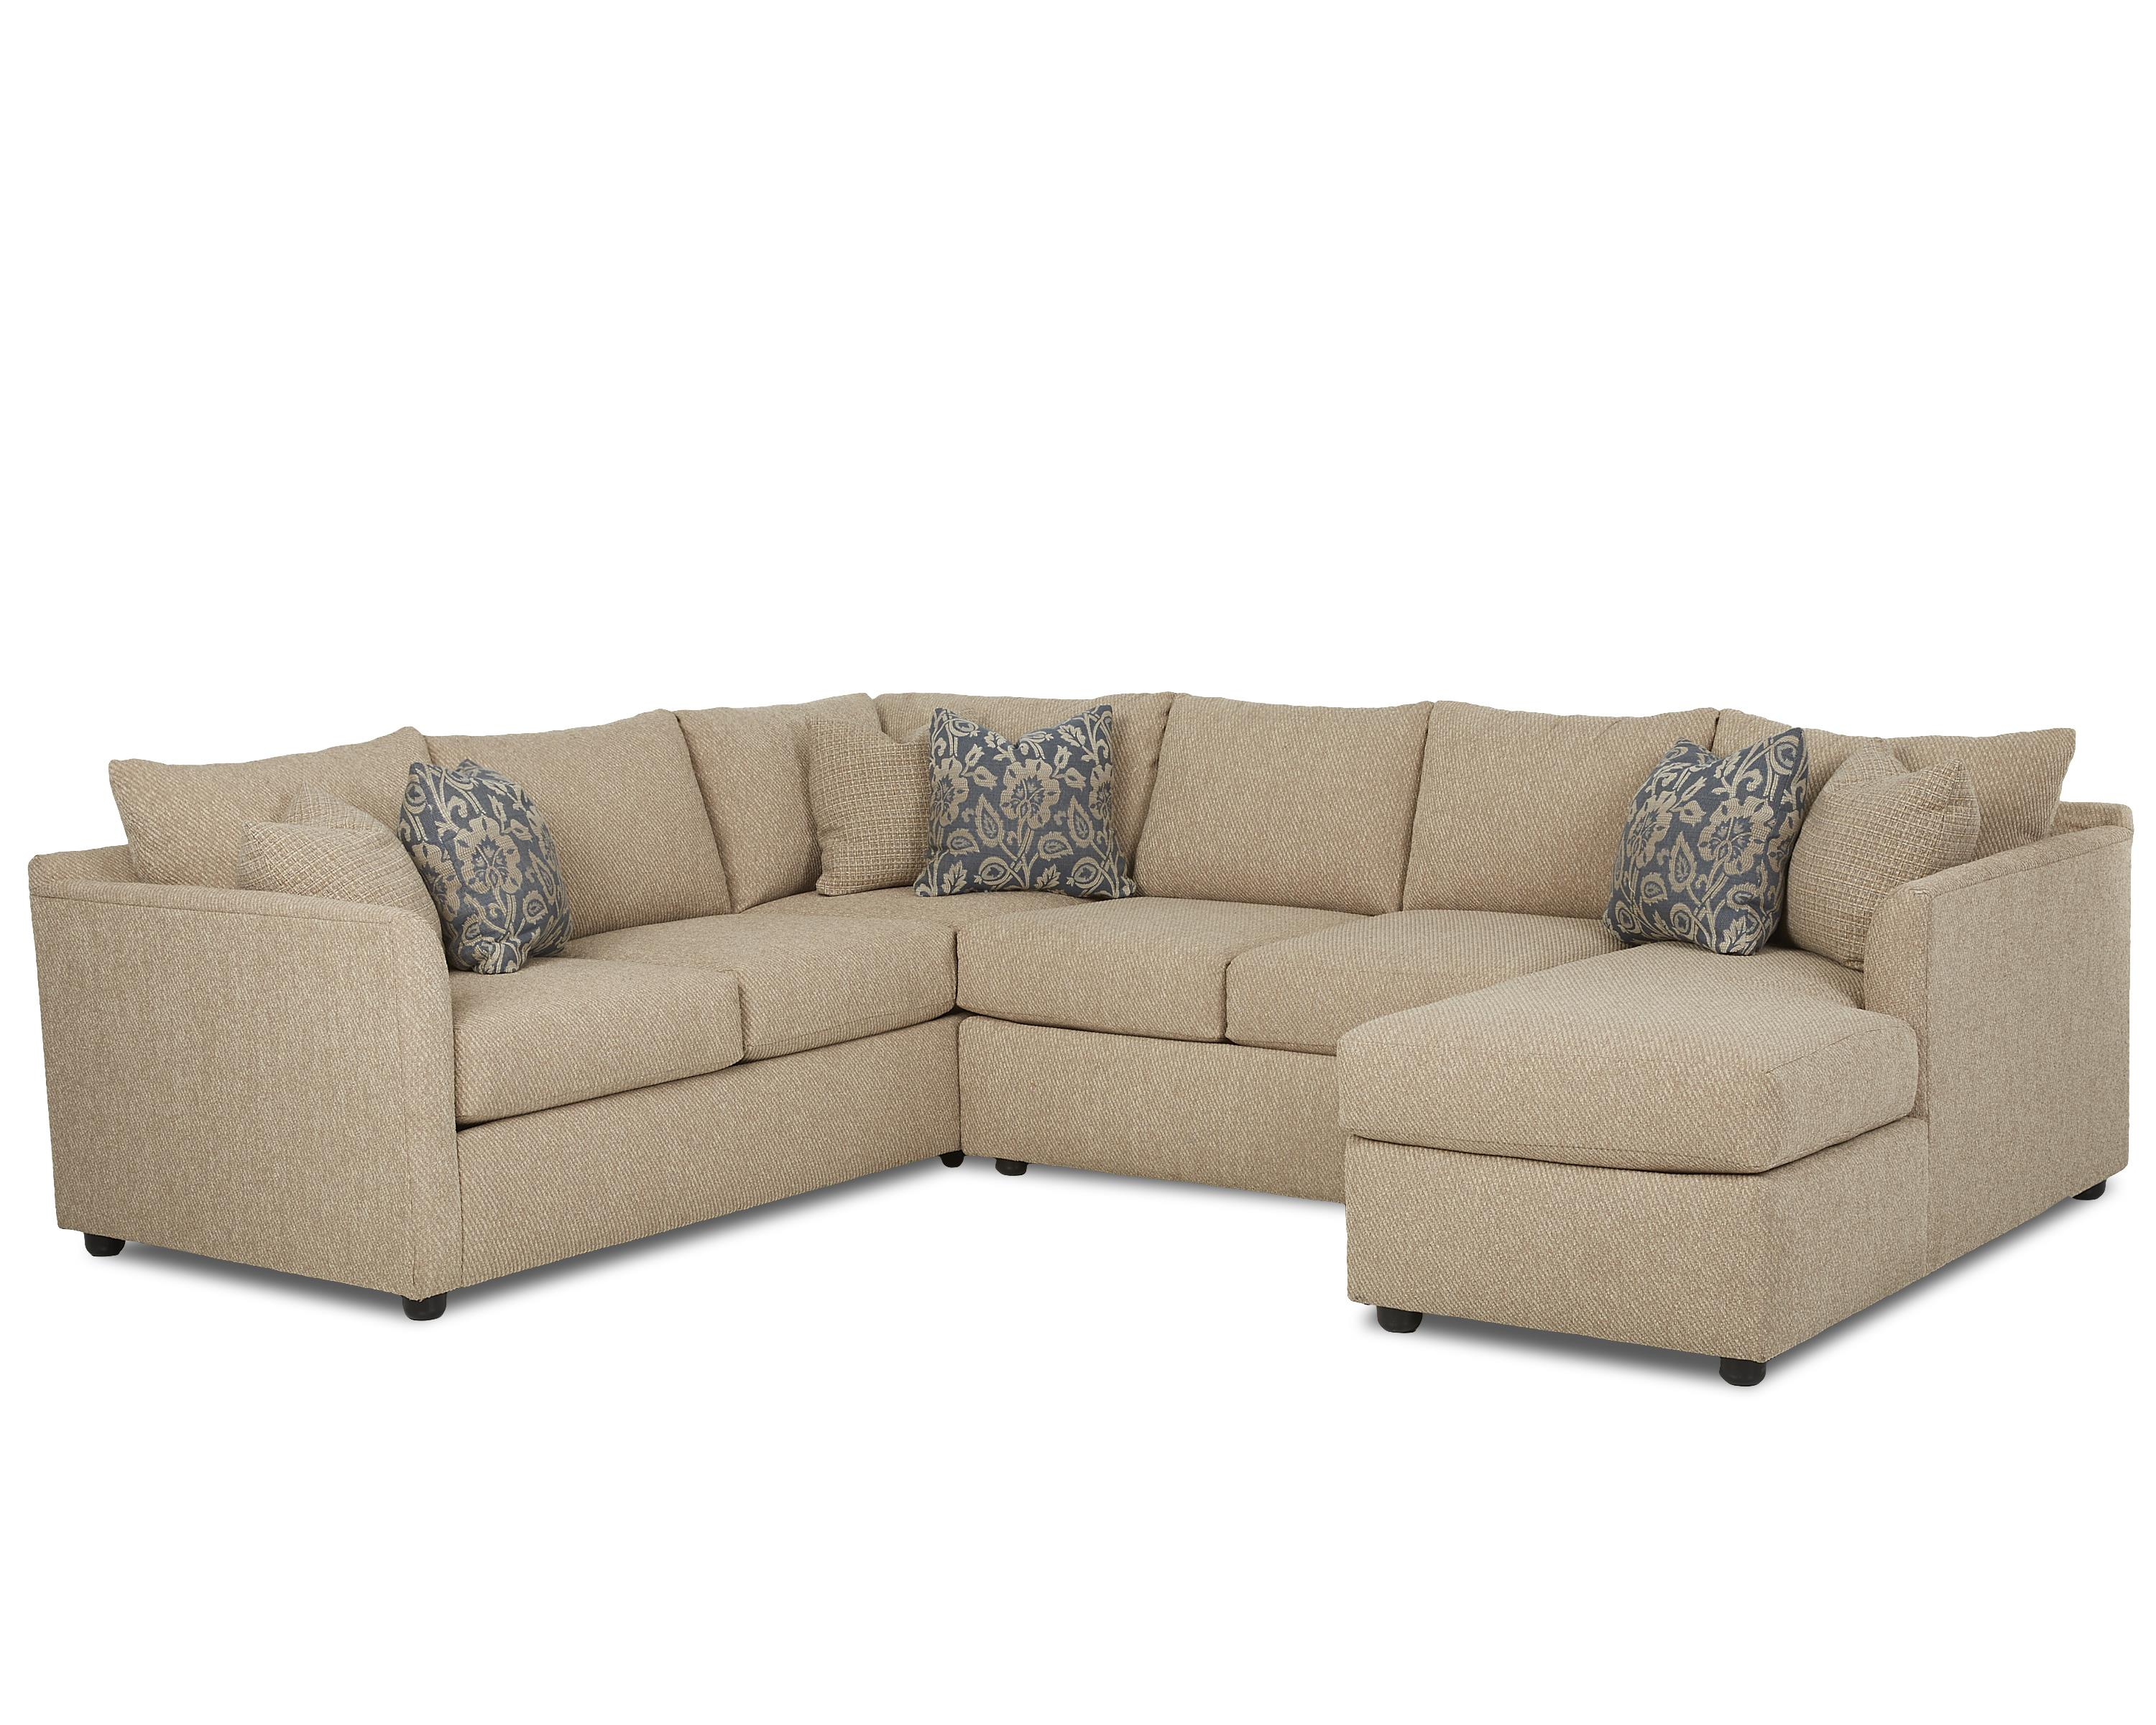 transitional style sectional sofas new sofa price with chaise by trisha yearwood